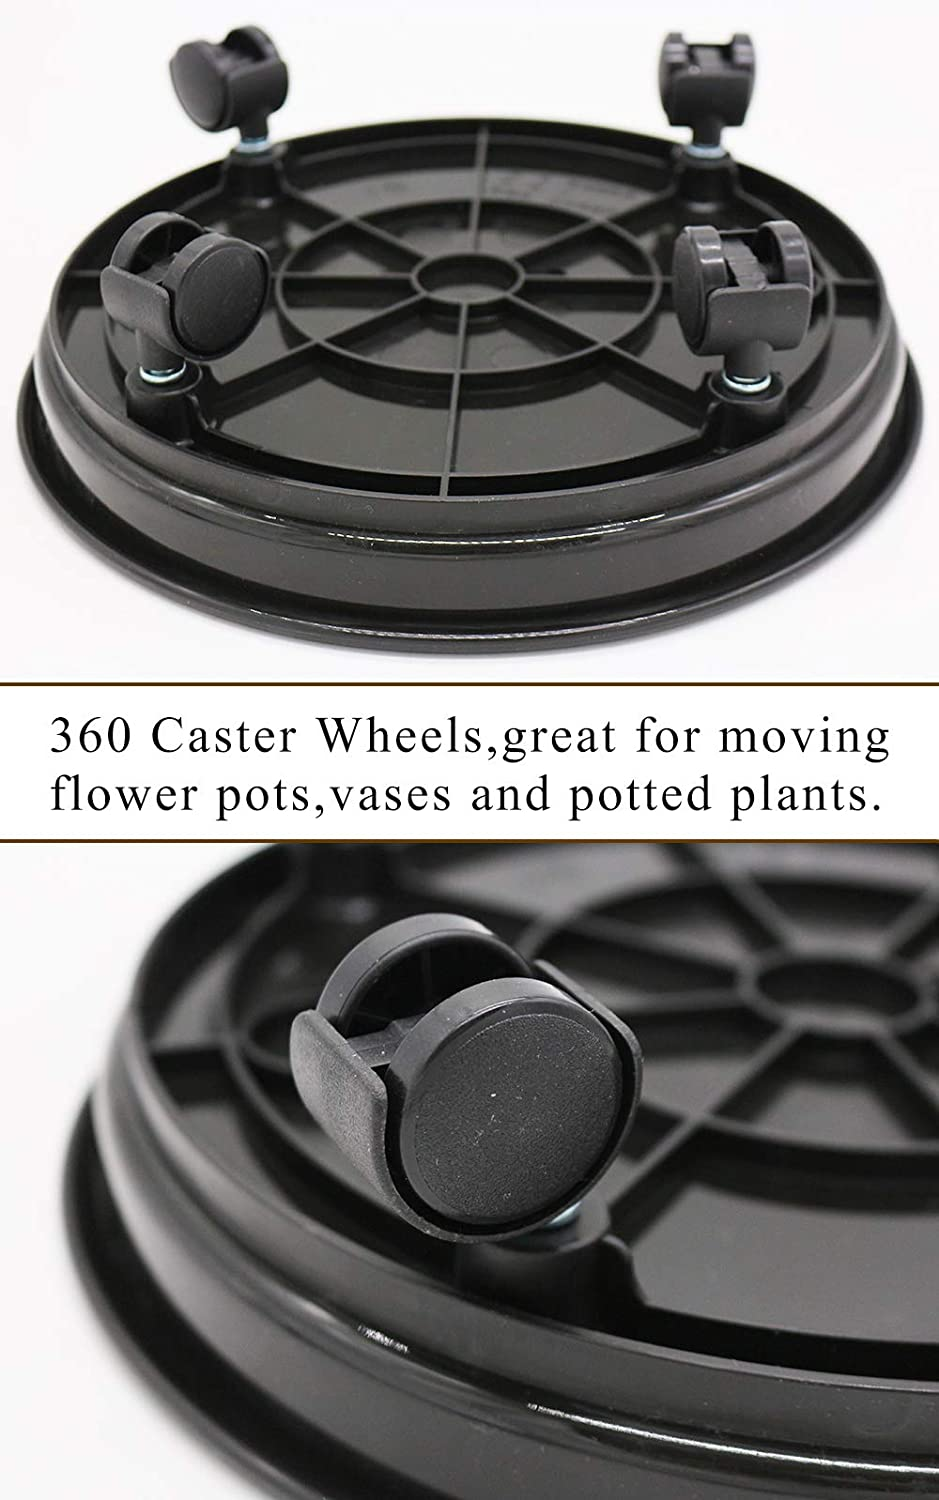 12 Black Plant Caddy,2 Pack of Plant Pallet Caddy with Wheels Round Flower Pot Mover Indoor Rolling Planter Dolly on Wheels(2 Pack)